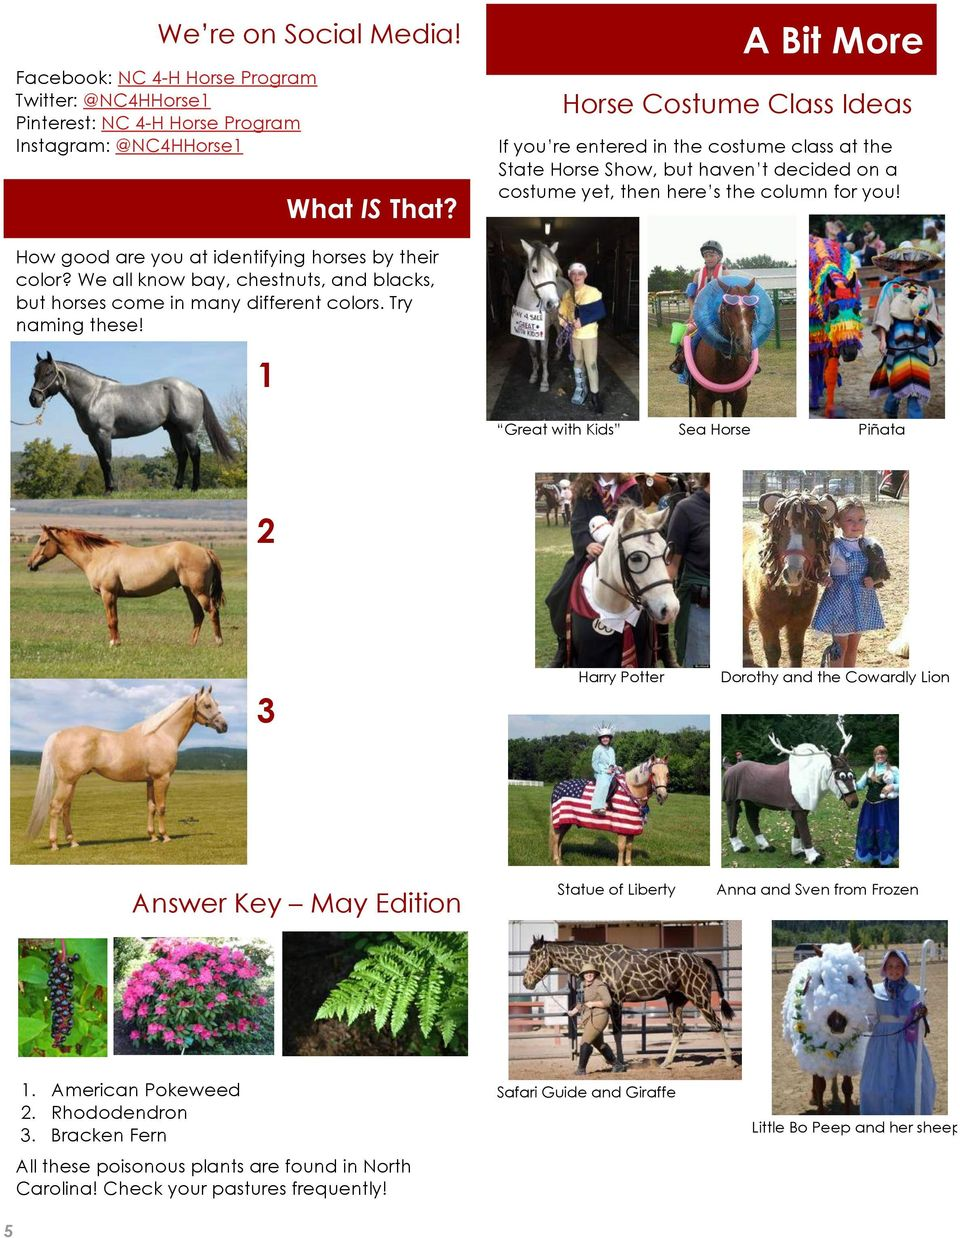 How good are you at identifying horses by their color? We all know bay, chestnuts, and blacks, but horses come in many different colors. Try naming these!